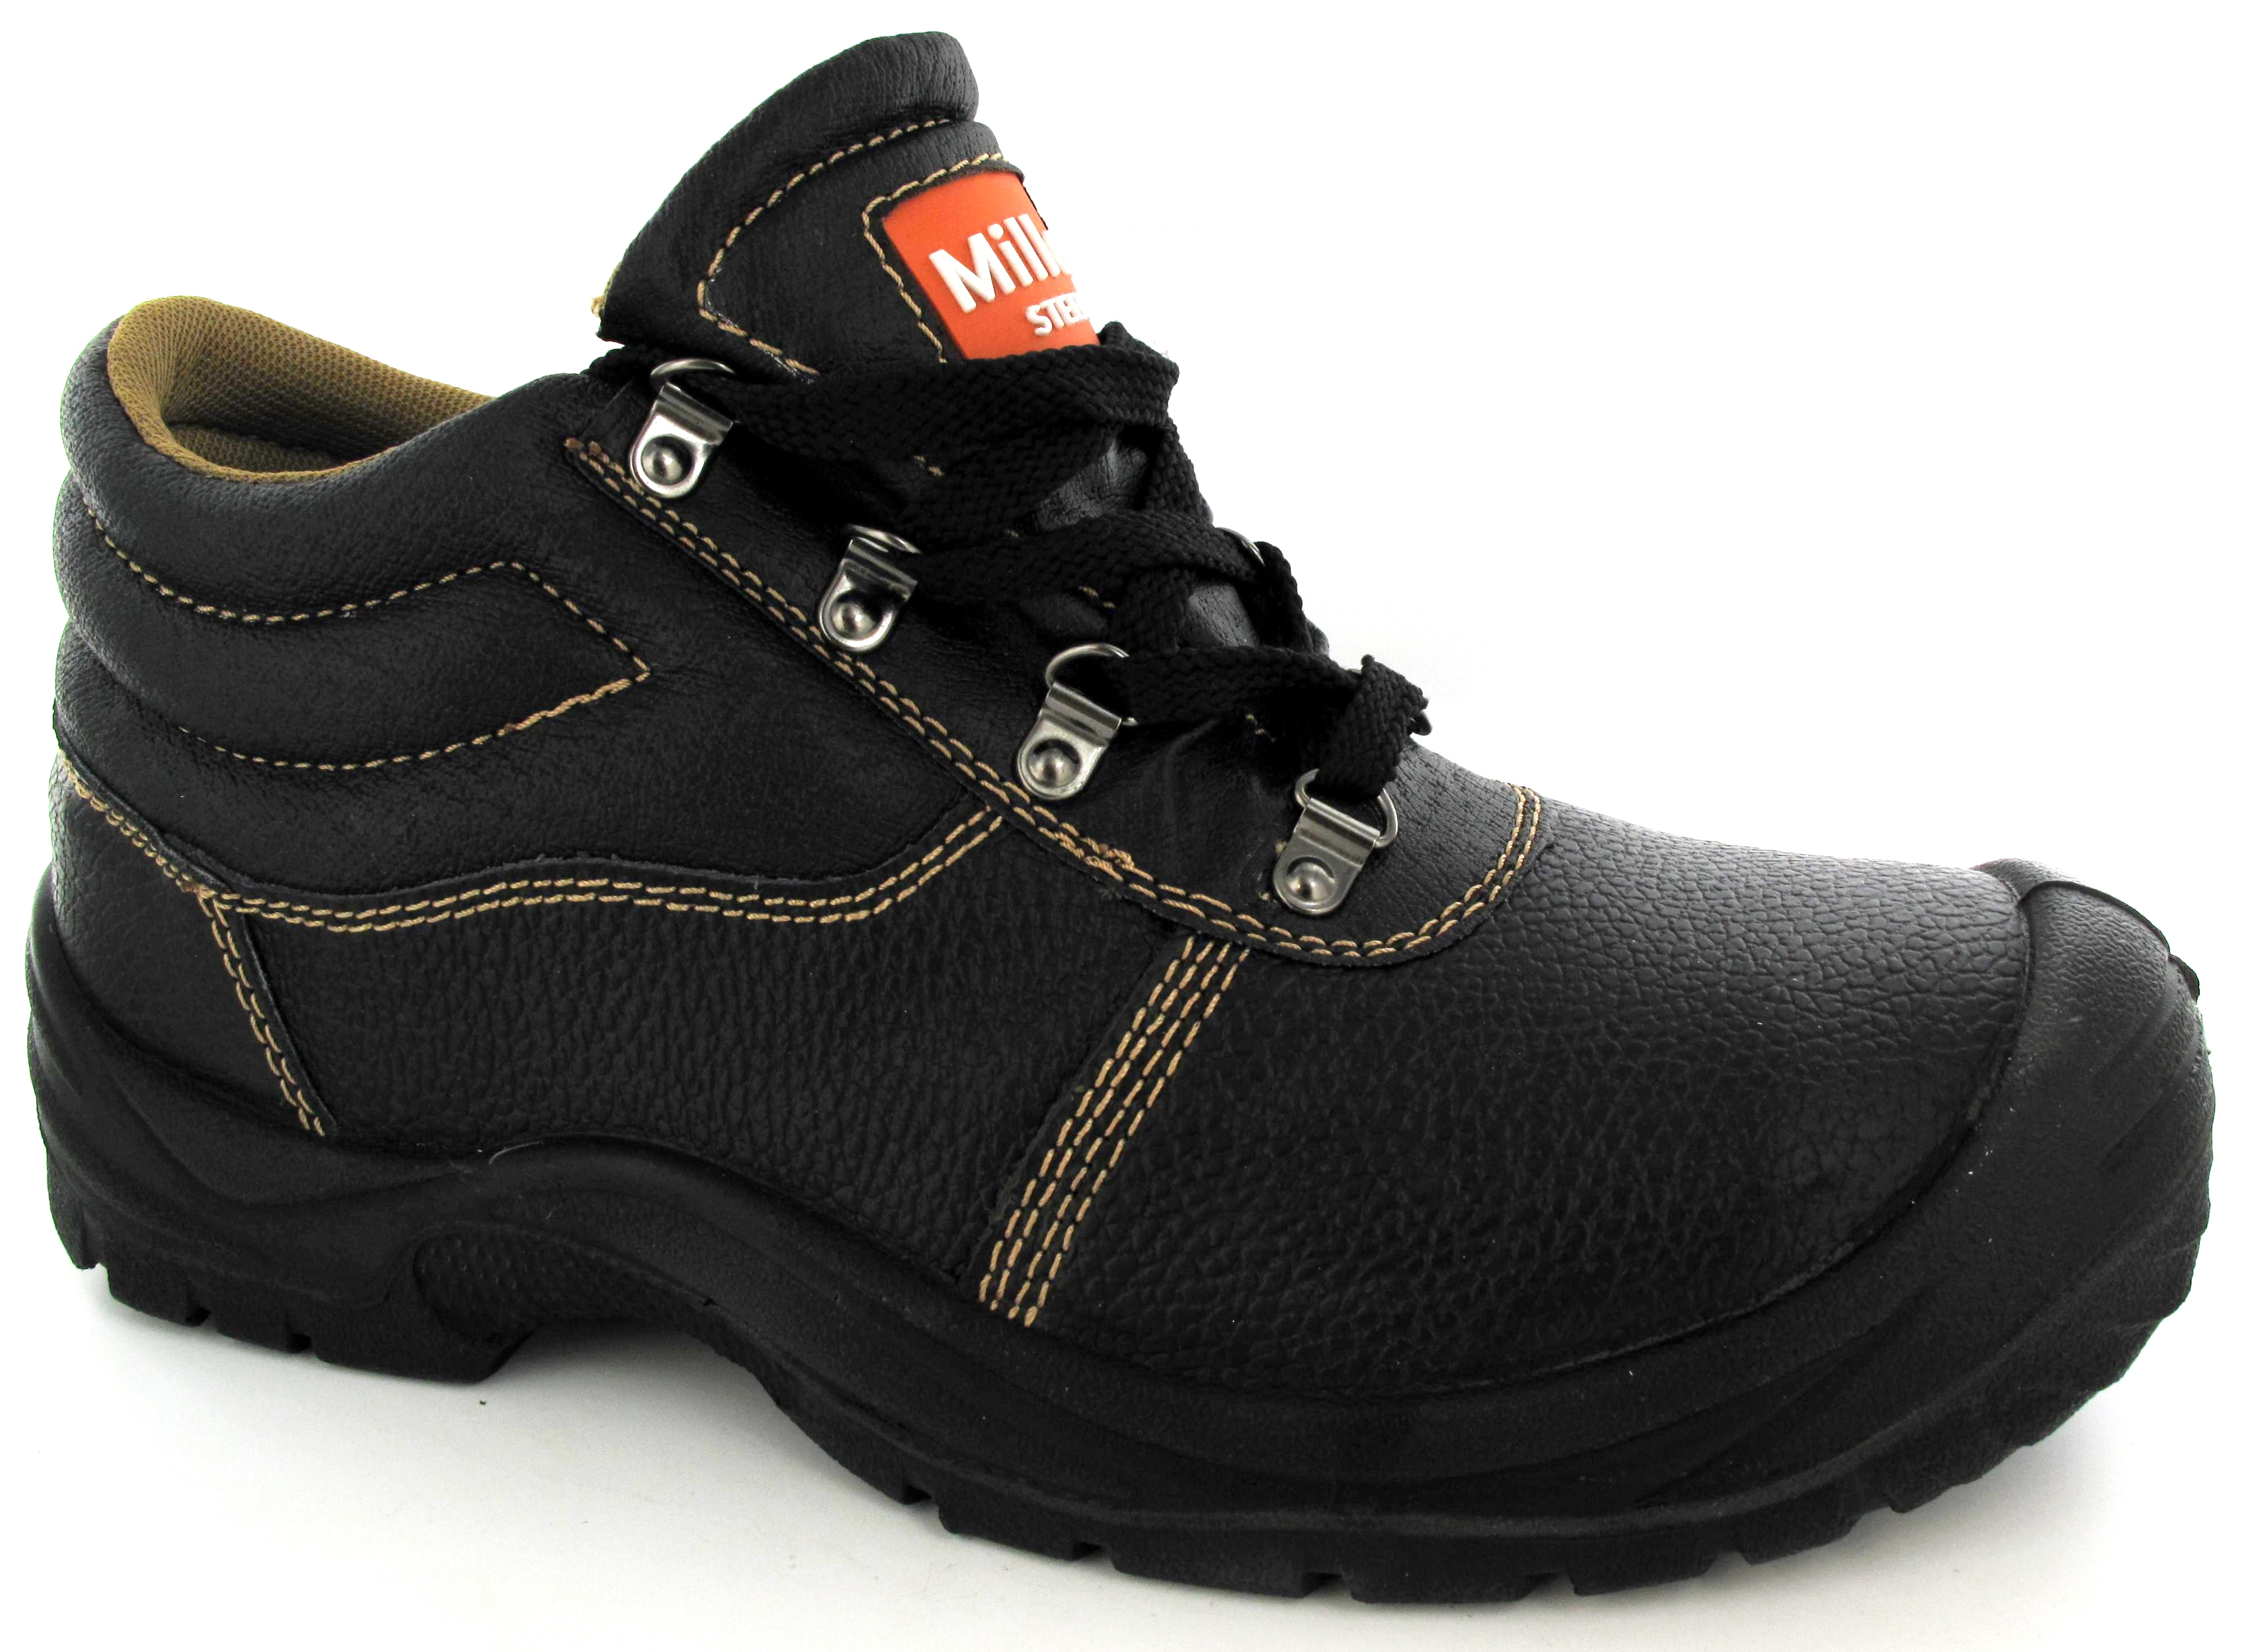 NEW MENS BLACK HIGH TOP SAFETY BOOTS STEEL TOE CAP ...